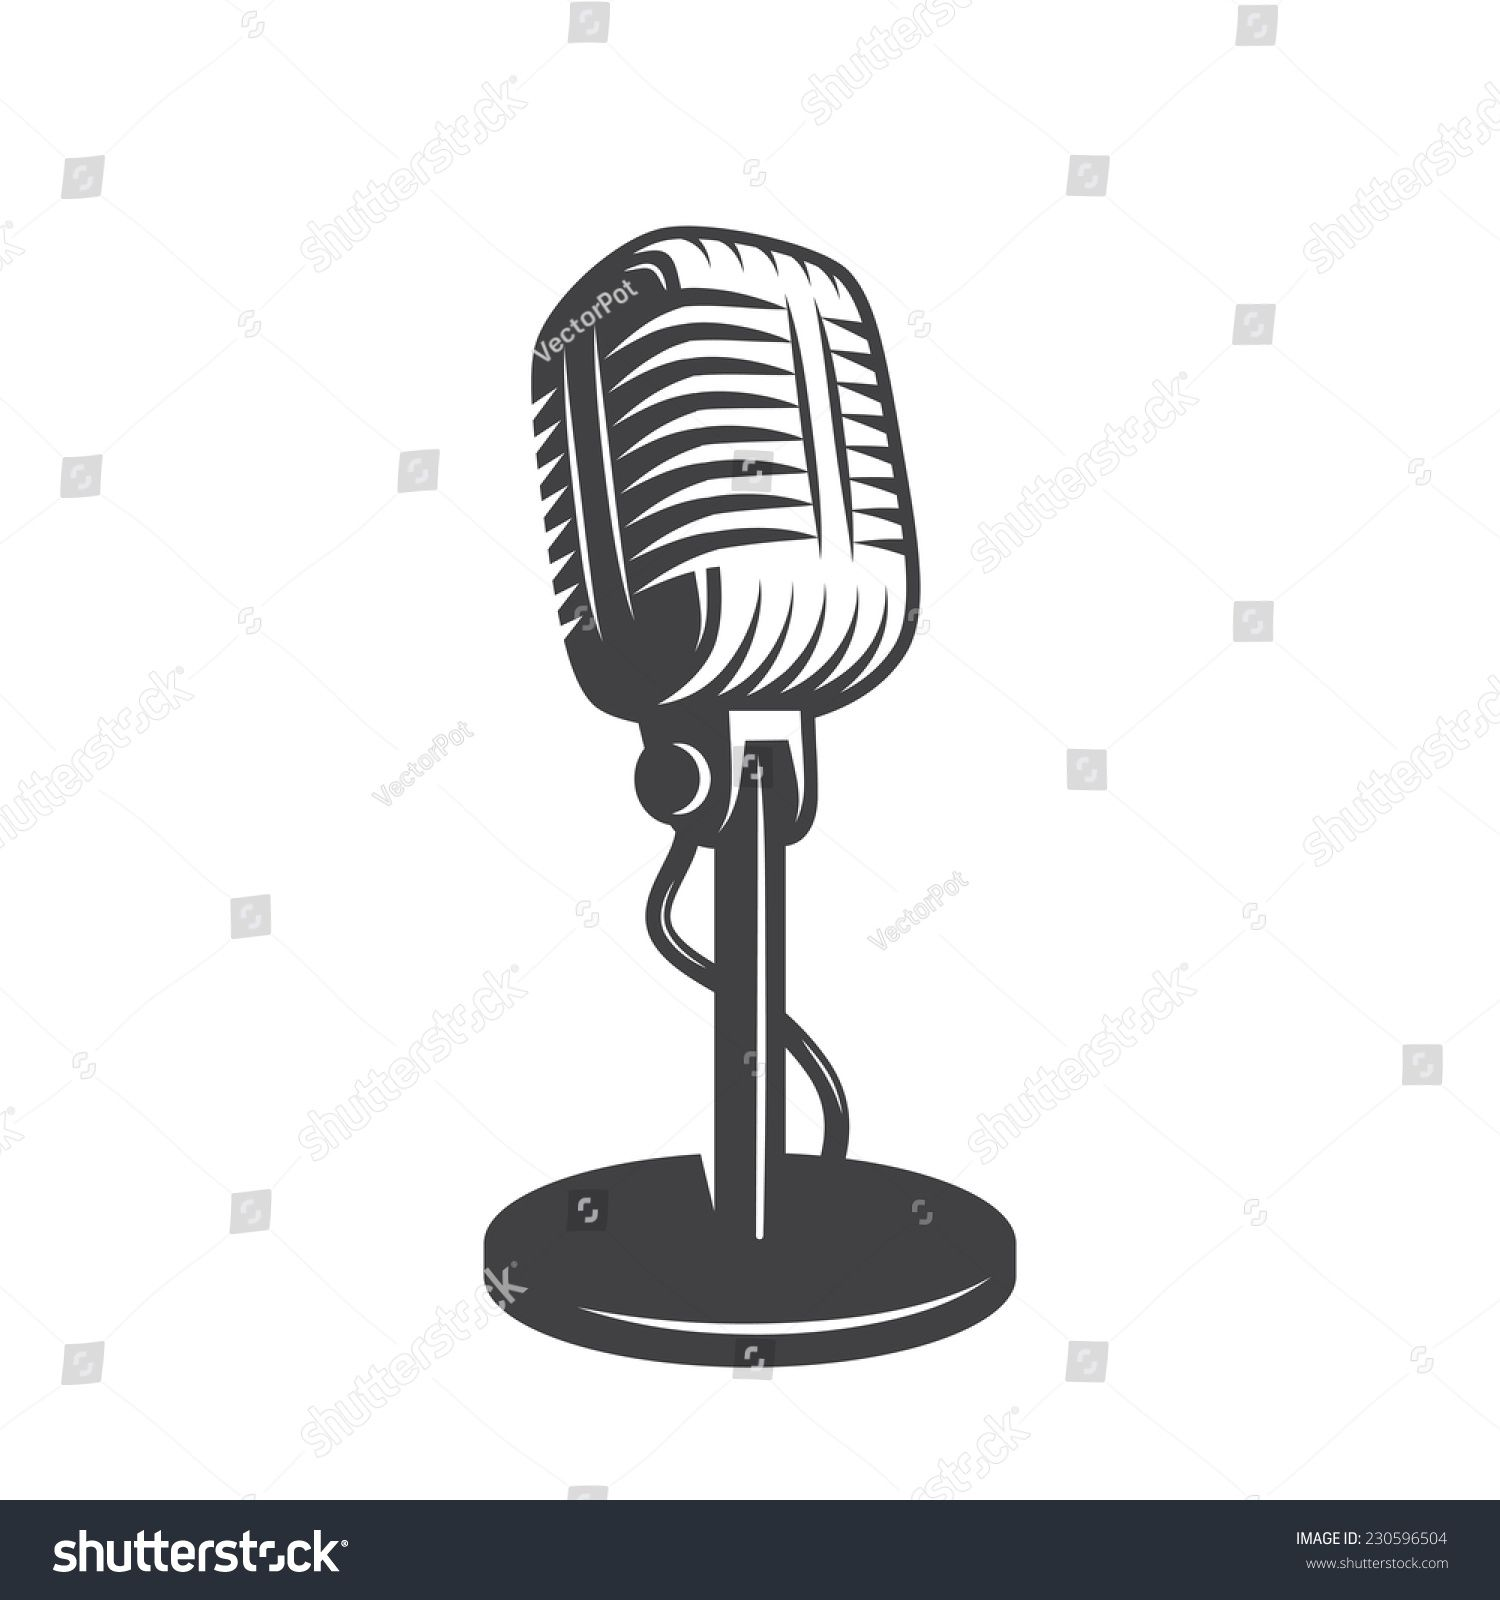 Vector Illustration Of Isolated Retro Vintage Microphone Ad Sponsored Isolated Illustratio In 2020 Concert Poster Design Vector Illustration Vintage Microphone